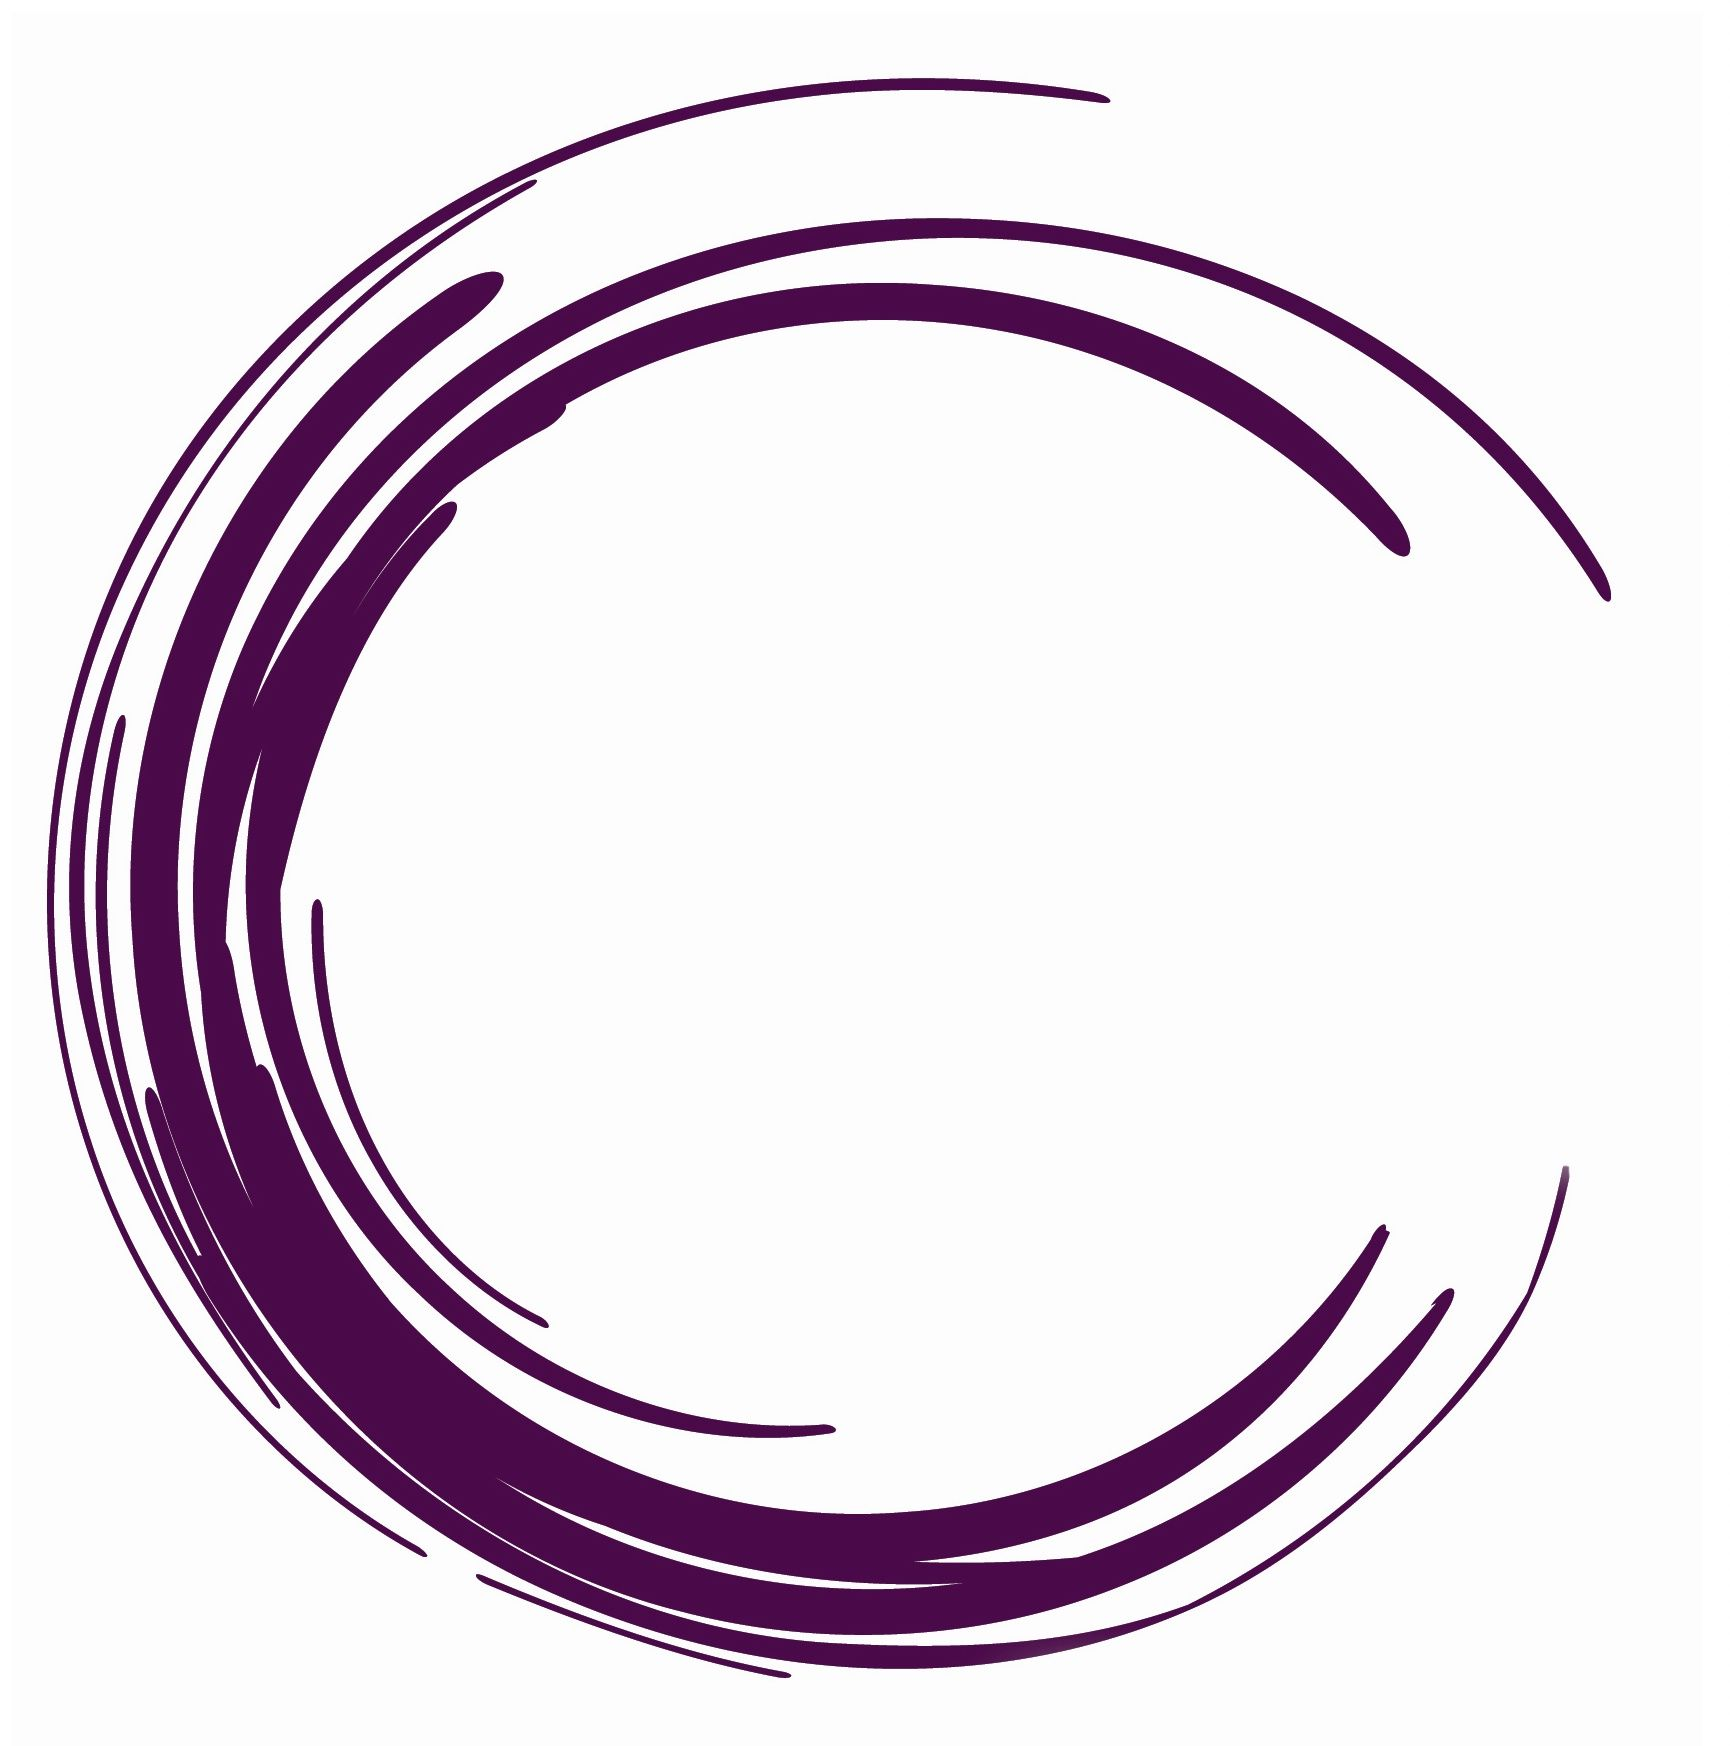 Circles eccentric incomplete logo by outerspace landscape for Outerspace landscape architects